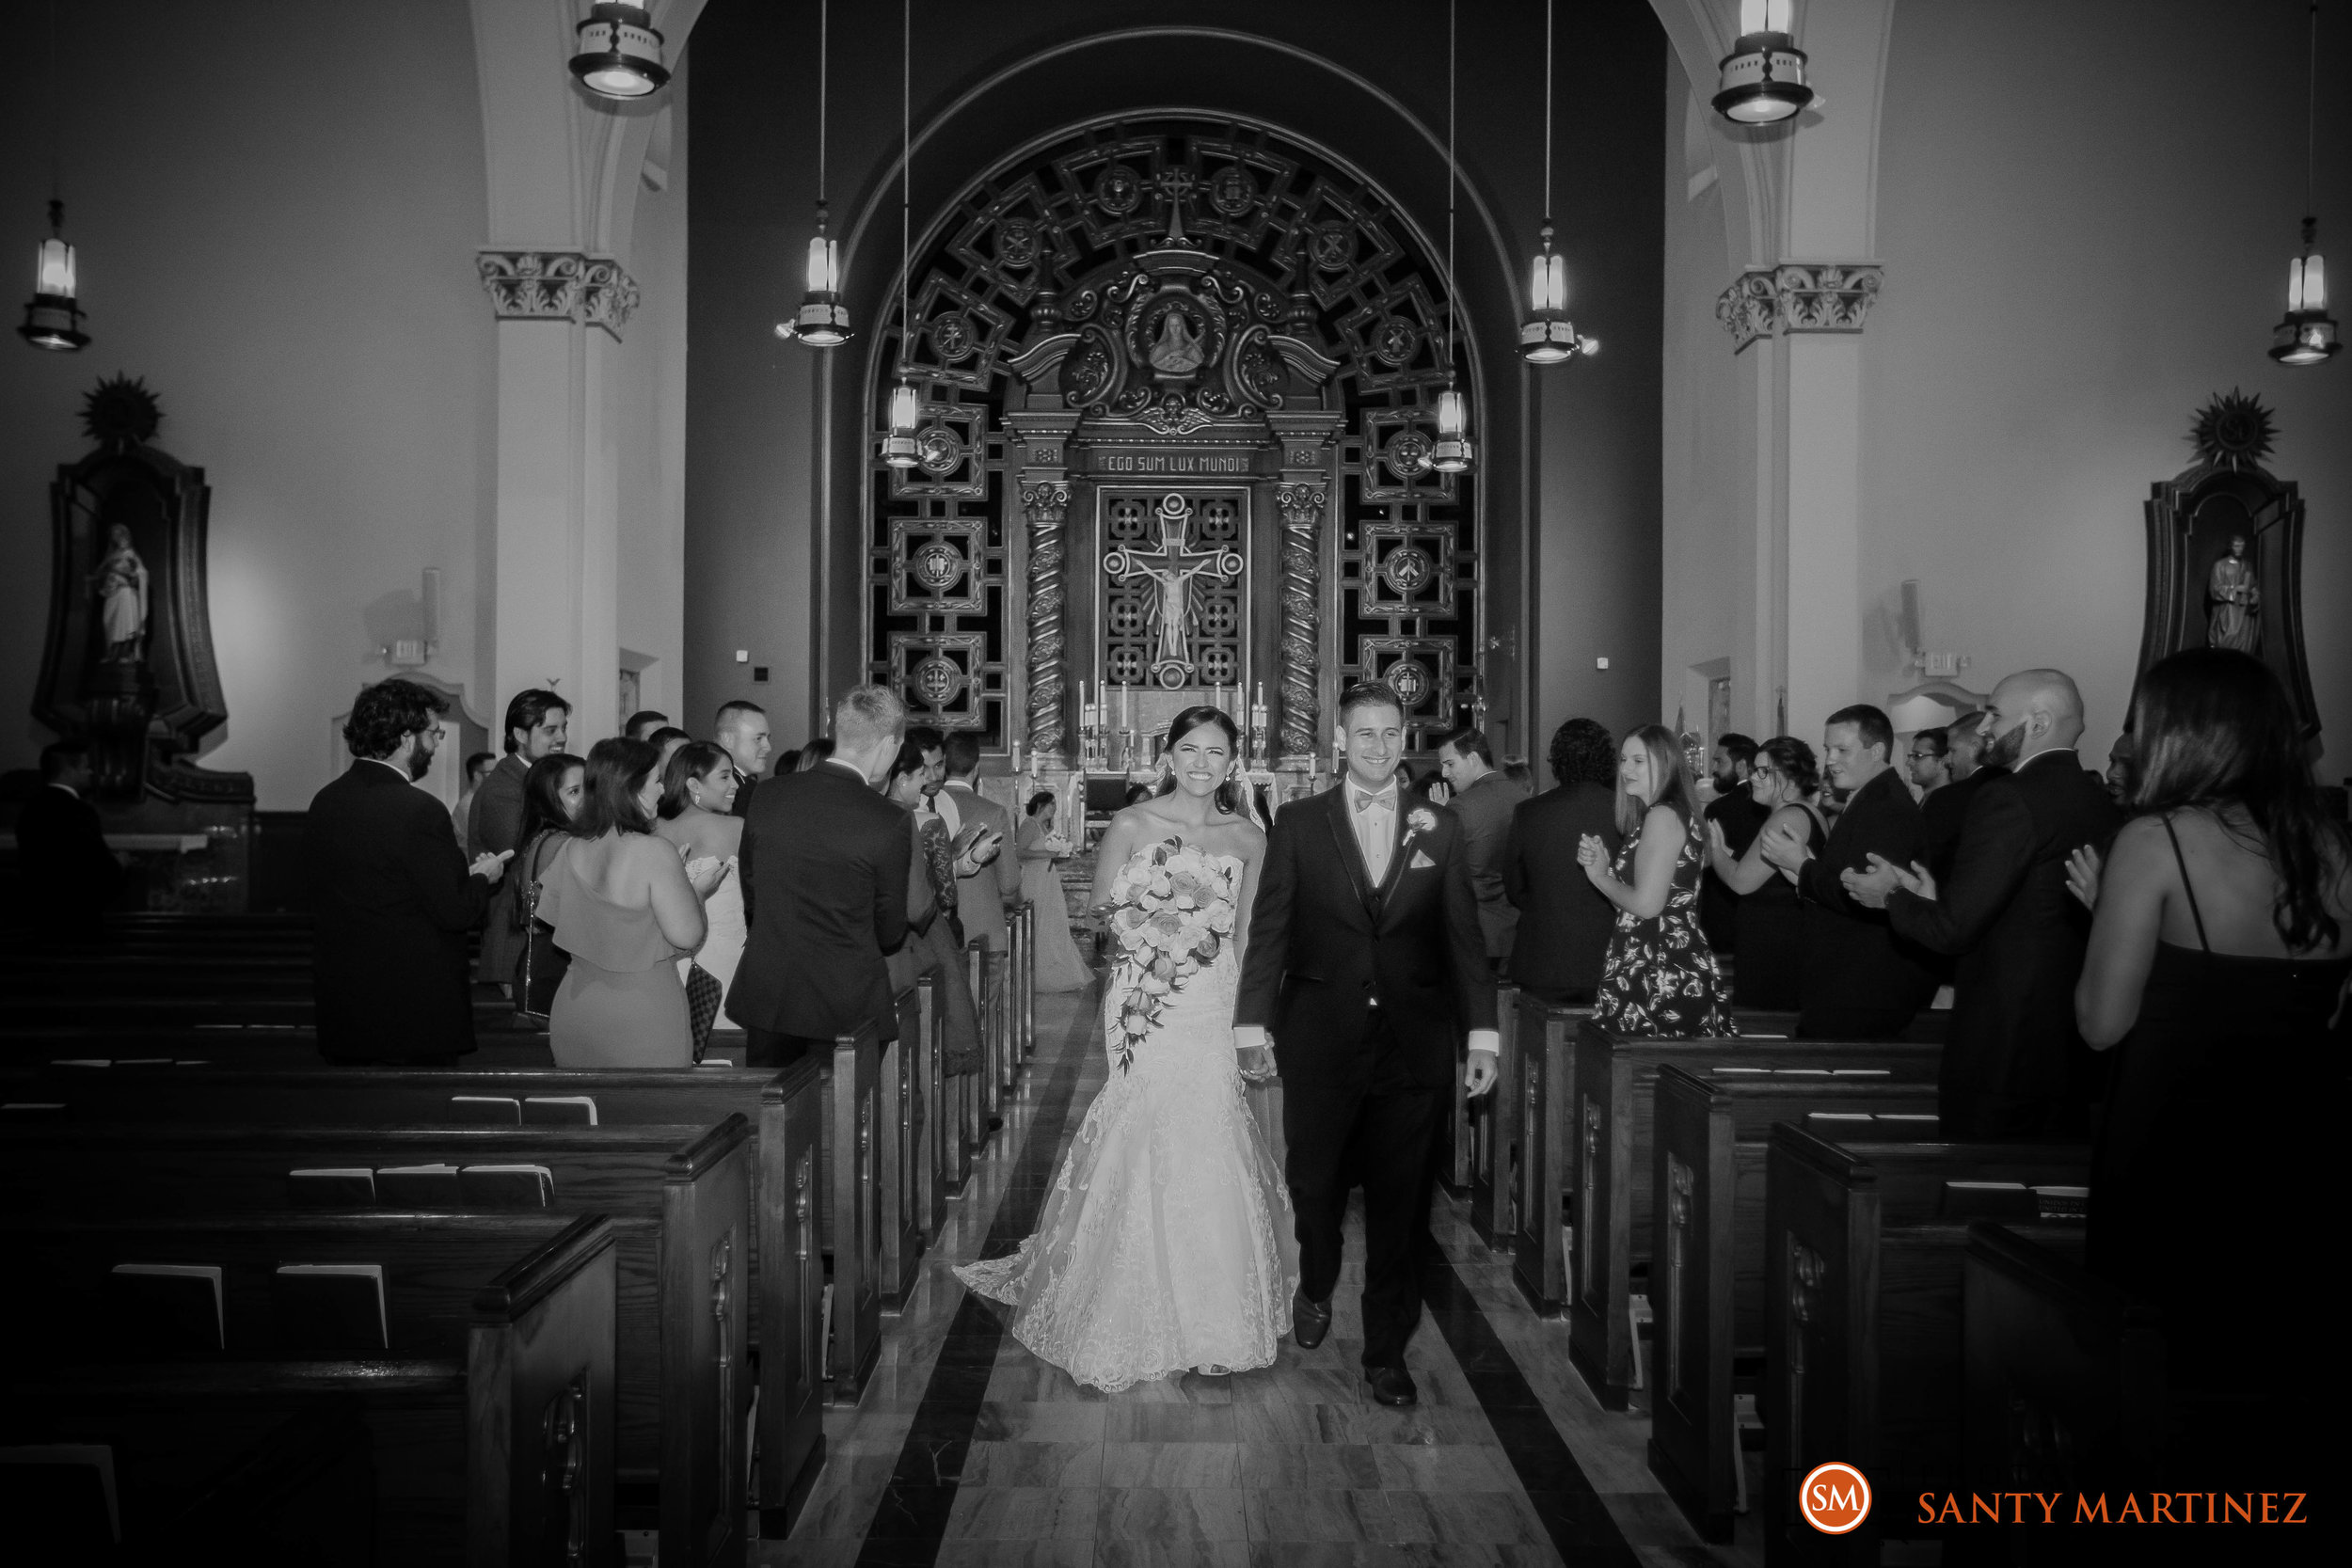 Wedding - Biltmore Hotel - Vista Lago Ballroom - Photography by Santy Martinez-29.jpg